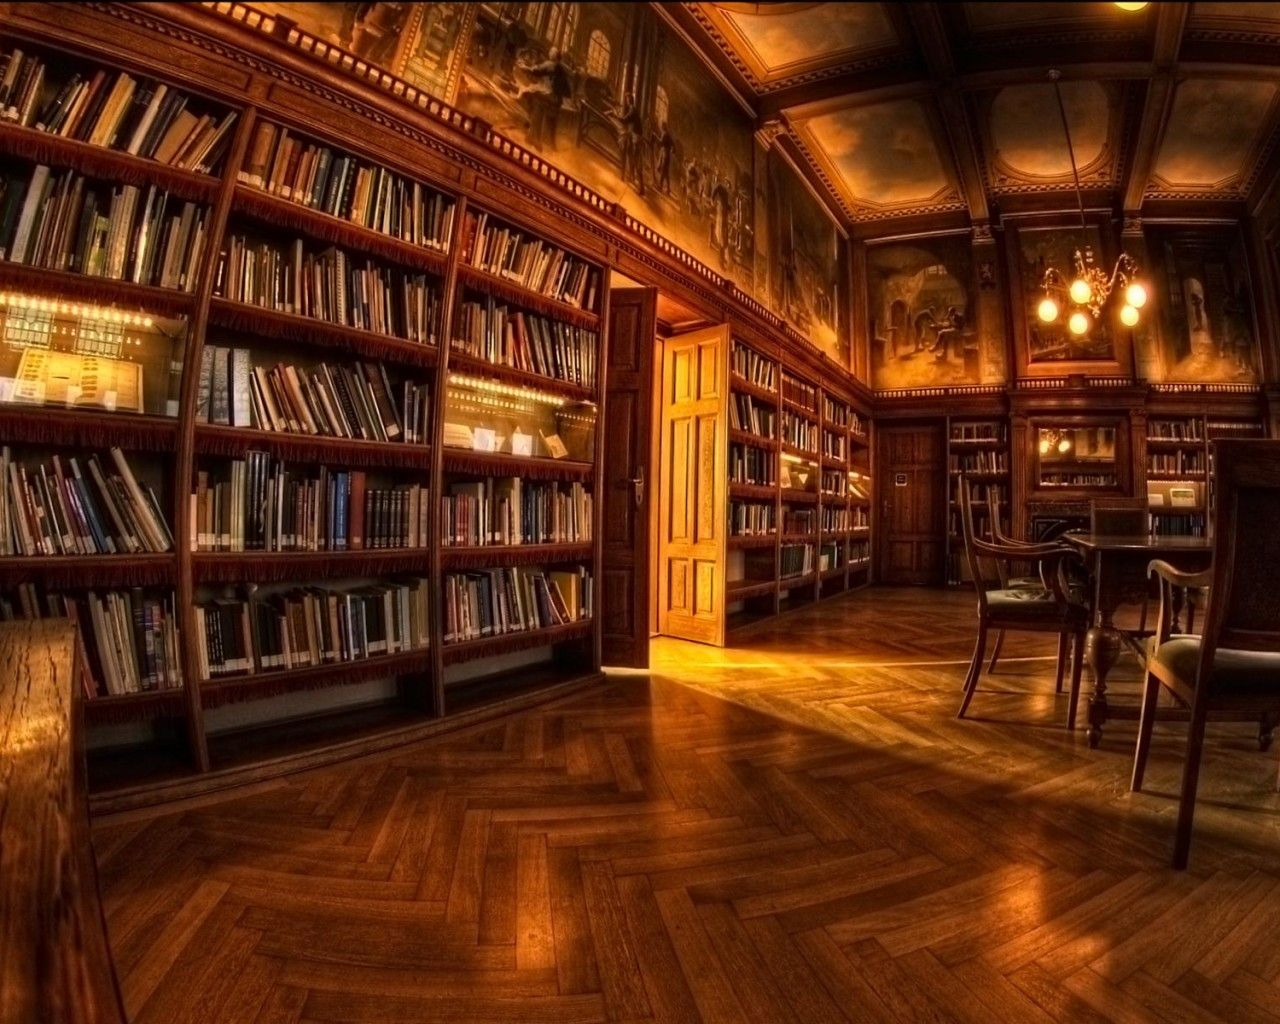 Download Wallpaper 1280x1024 Room Design Library Shelves 1280x1024 Hd Background Biltmore House Home Libraries Old Libraries